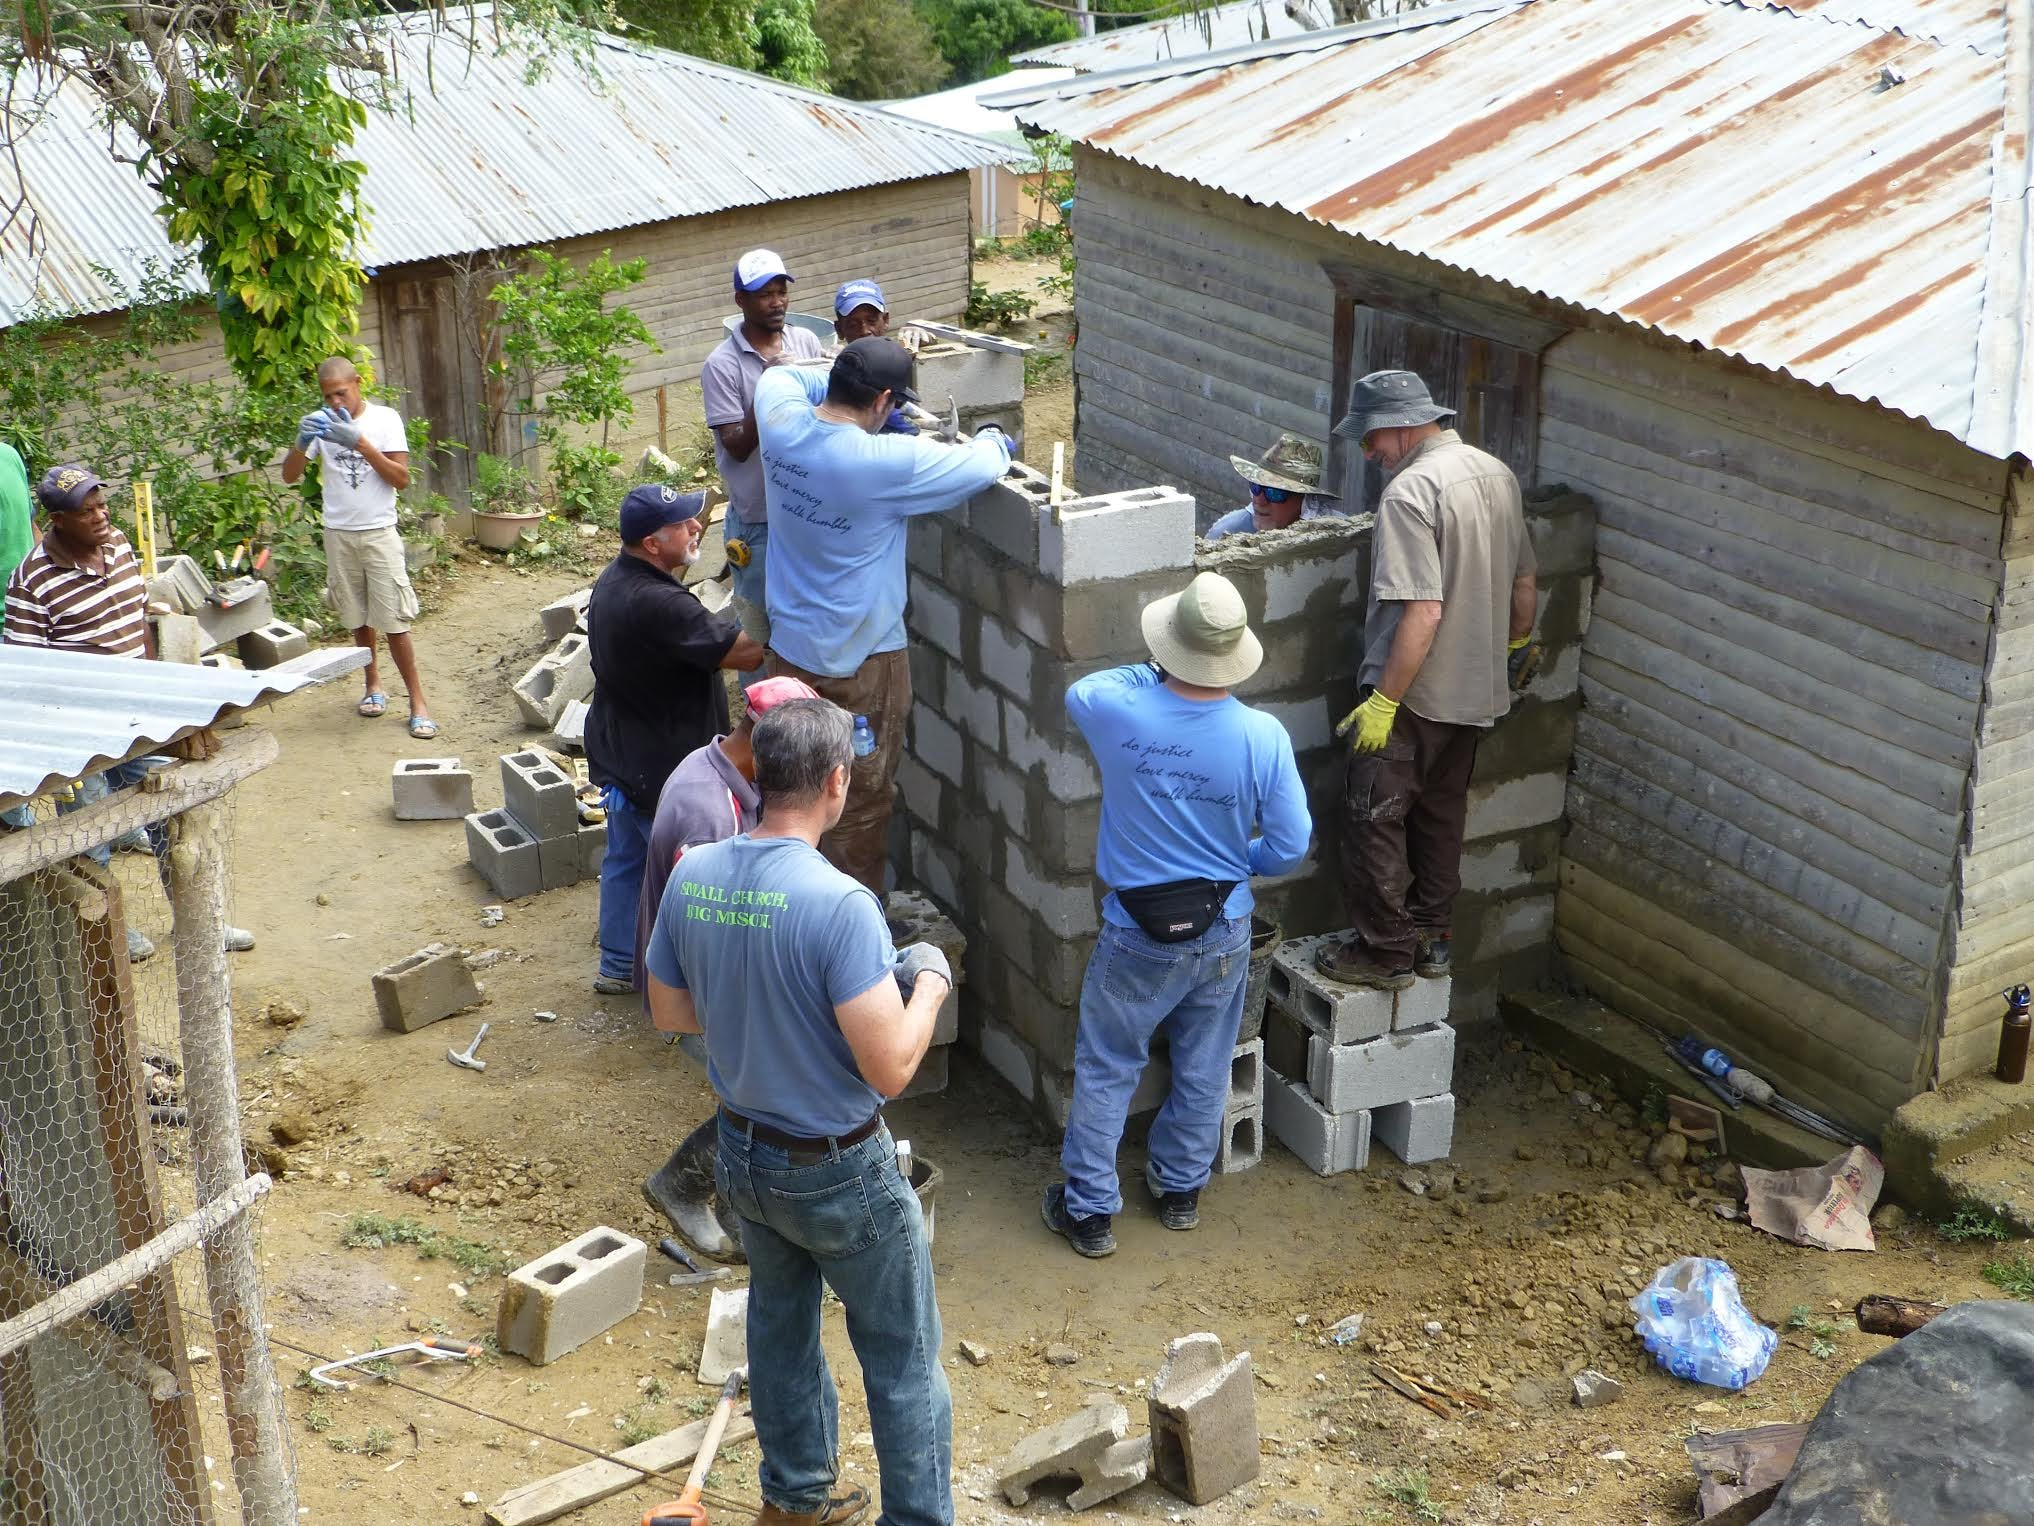 Working toward transformation in the Dominican Republic